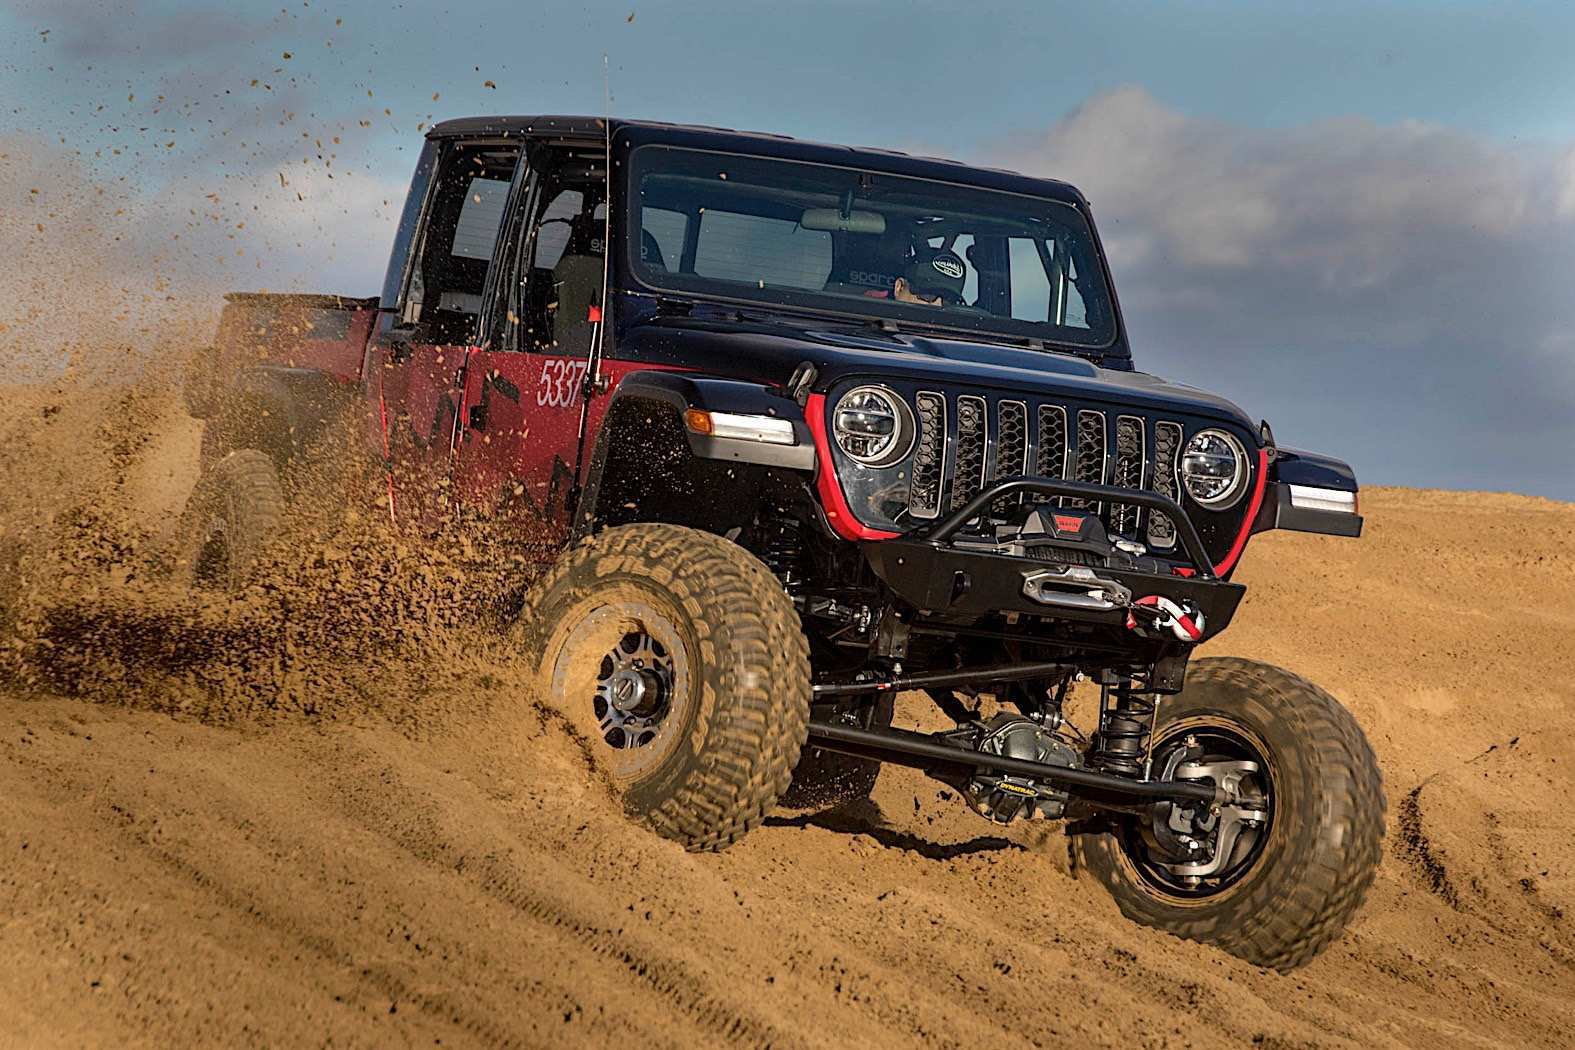 54 New 2020 Jeep Gladiator King Of The Hammers New Concept